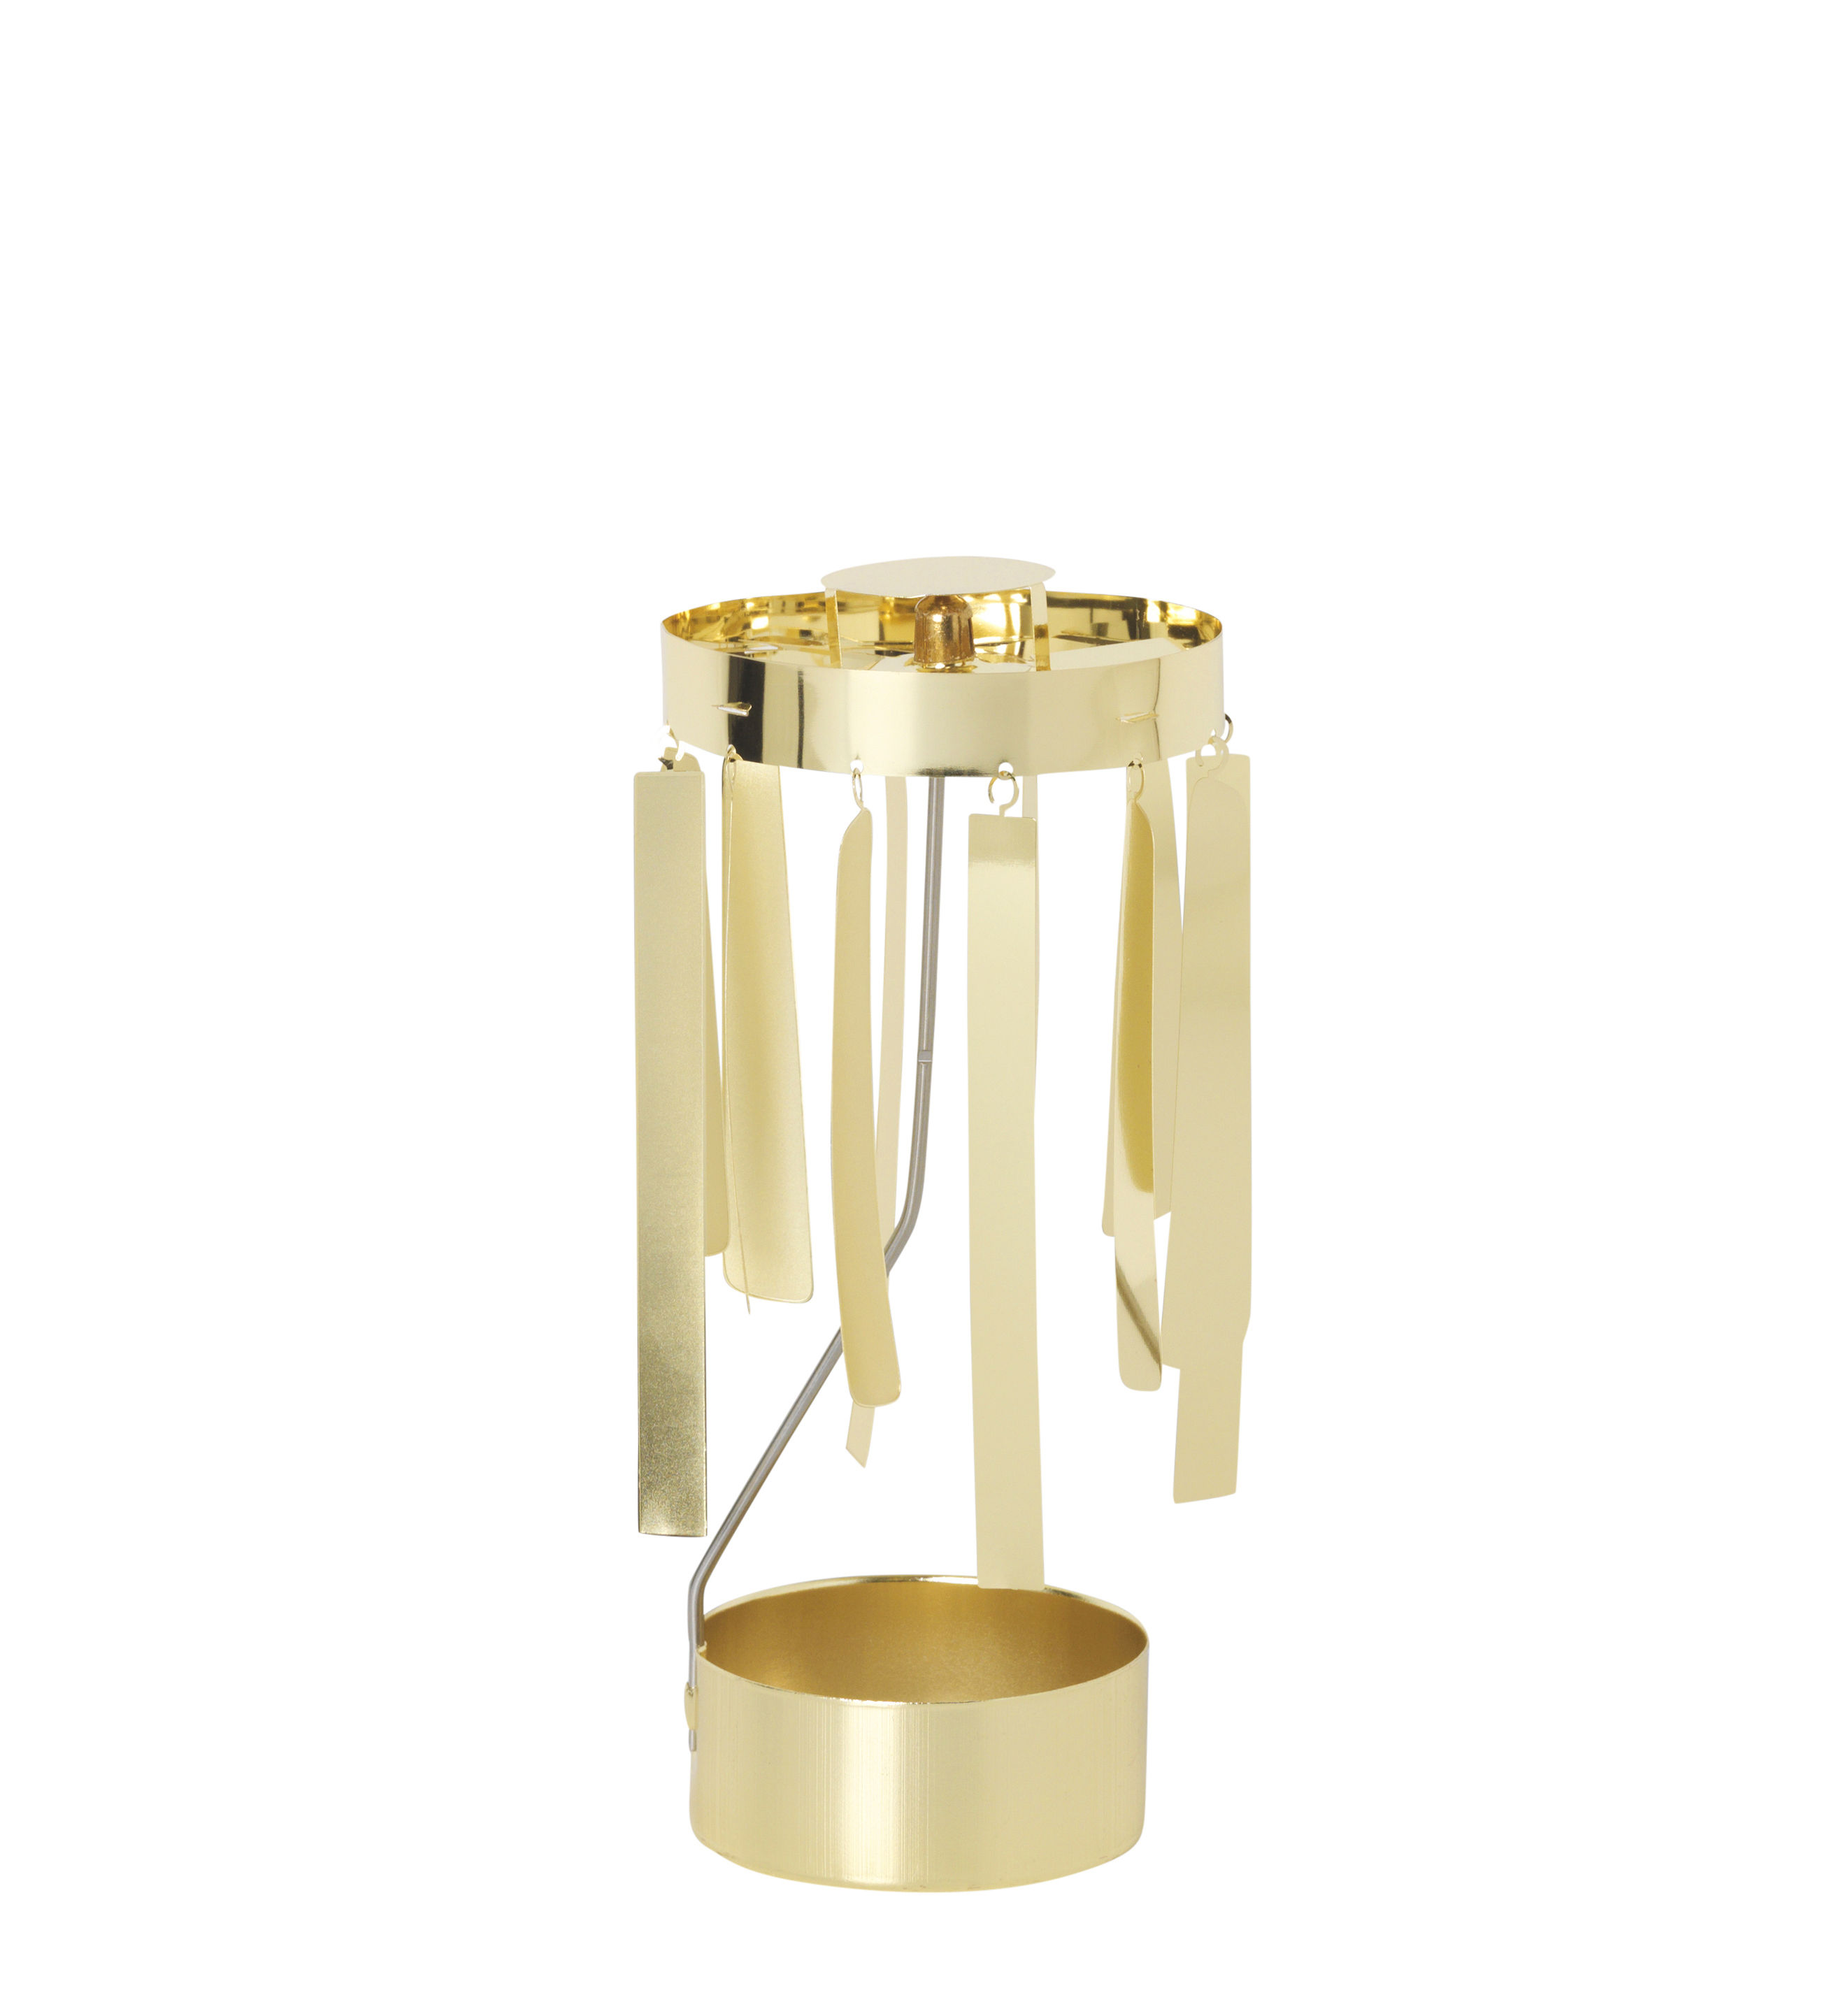 Decoration - Home Accessories - Tangle Christmas bell by Ferm Living - Gold - Metal